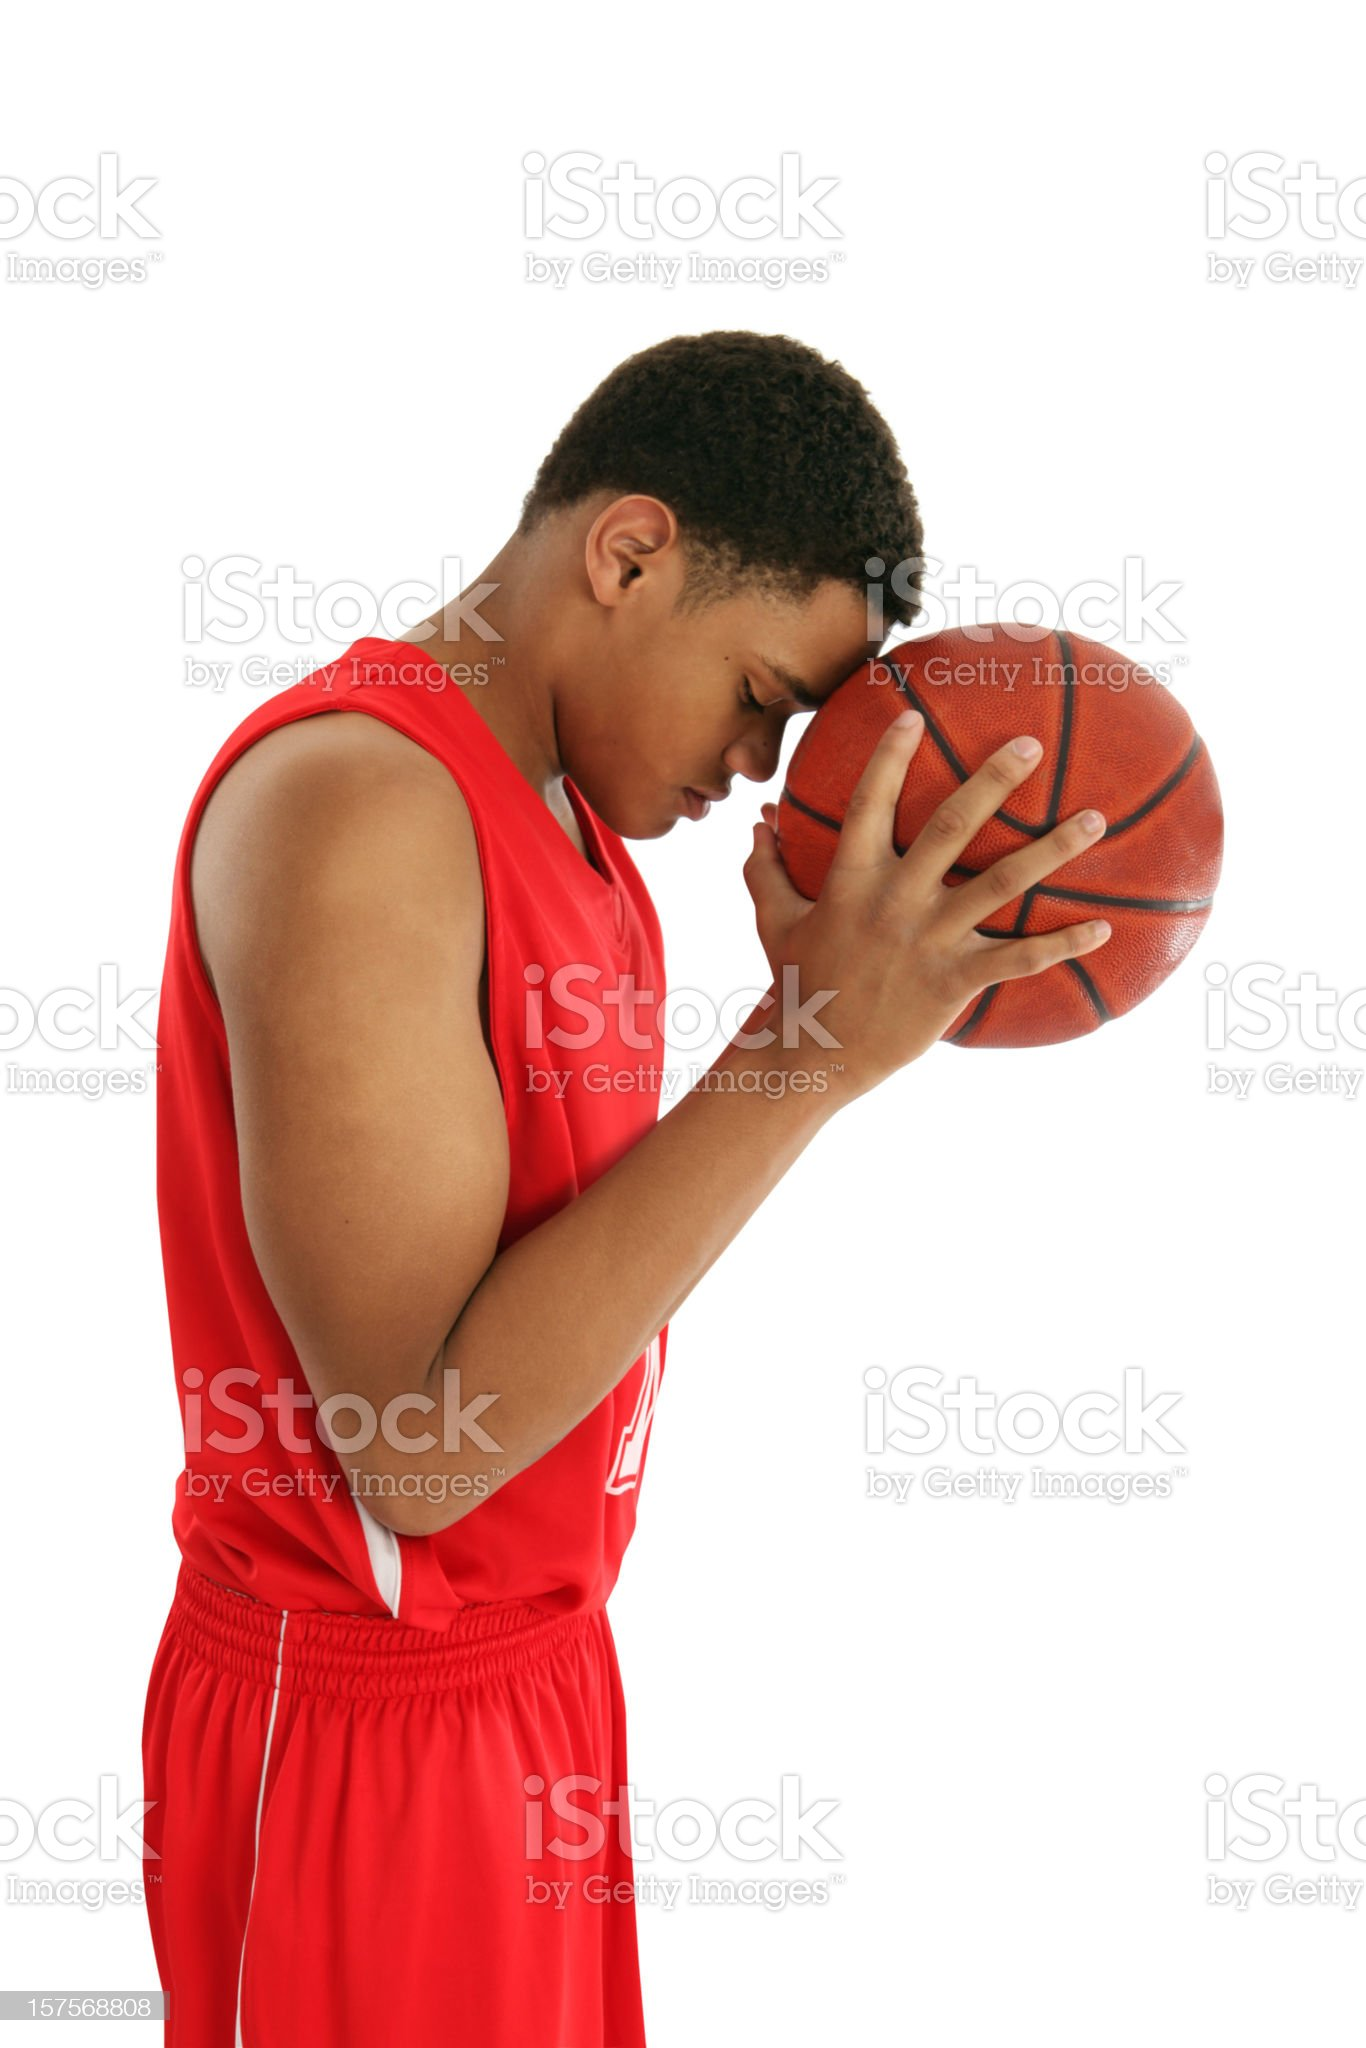 Basketball Player Thinking Before Shooting royalty-free stock photo